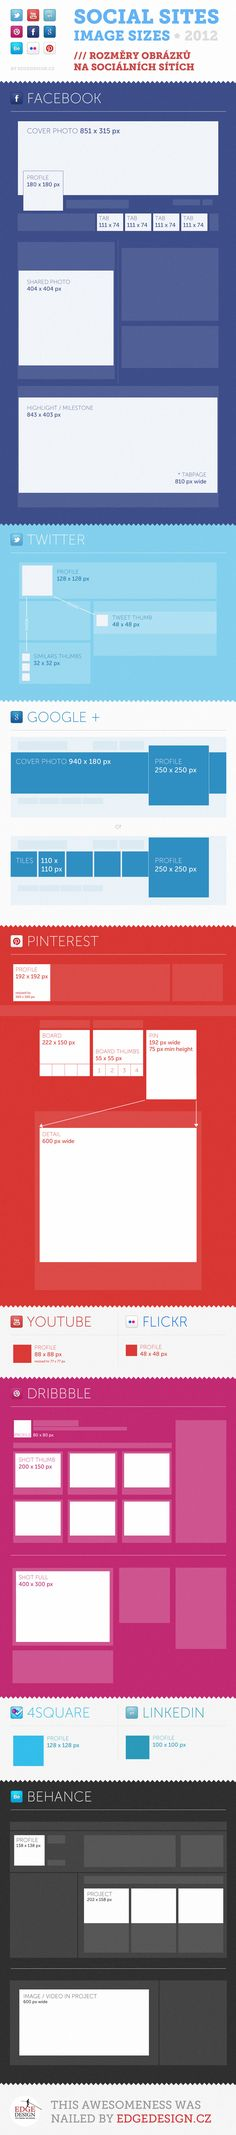 Cheatsheet, infographic - image sizes for social networks by Edgedesign.cz